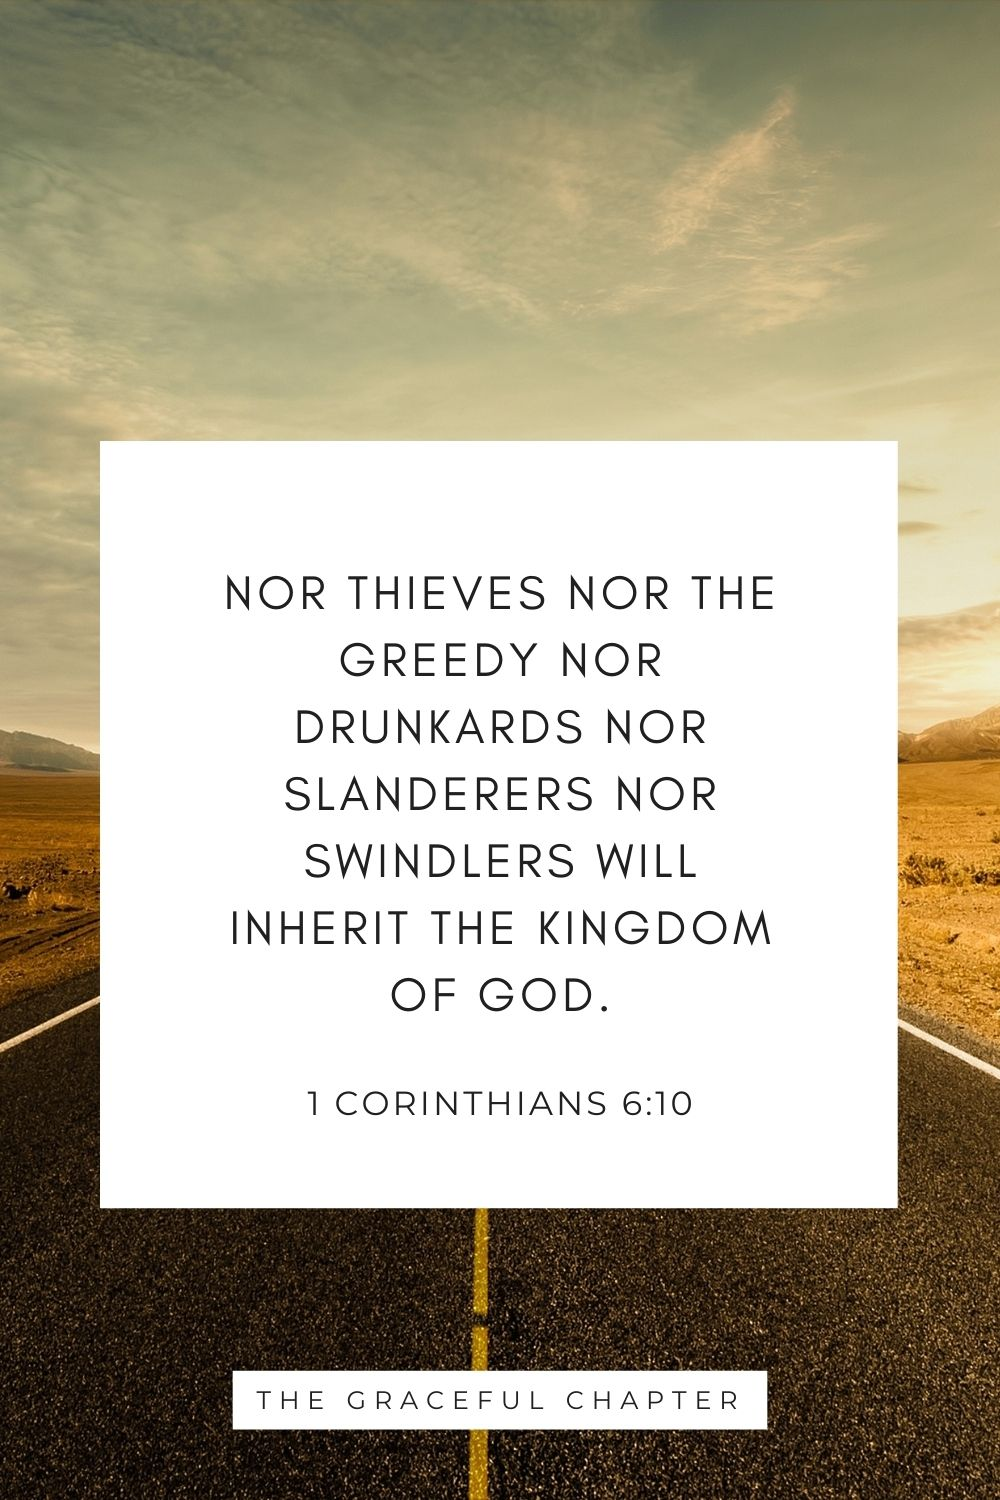 Nor thieves nor the greedy nor drunkards nor slanderers nor swindlers will inherit the kingdom of God. 1 Corinthians 6:10